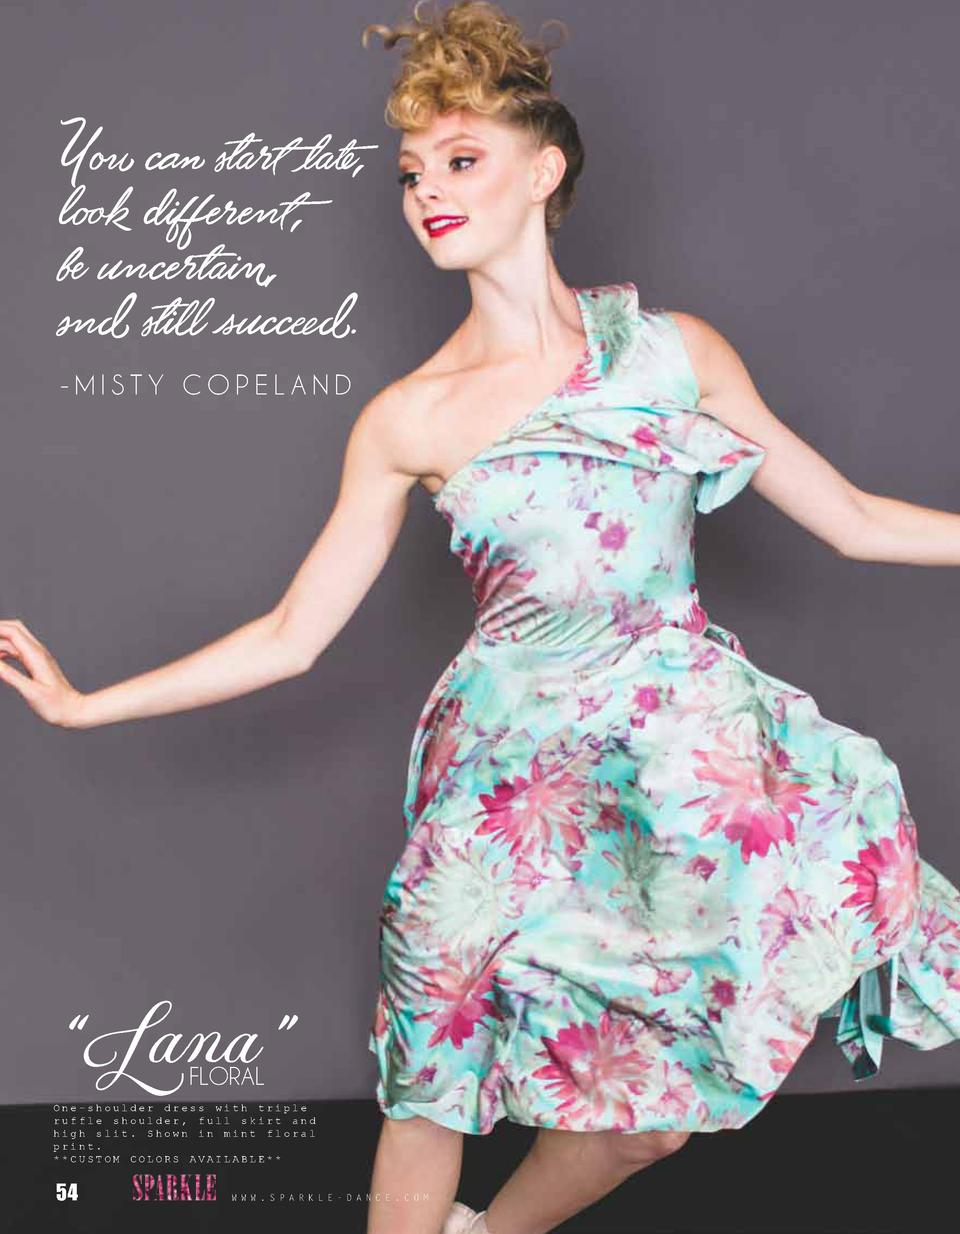 You can start late, look different, be uncertain, snd still succeed. -MISTY COPELAND     Lana    FLORAL  One-shoulder dres...